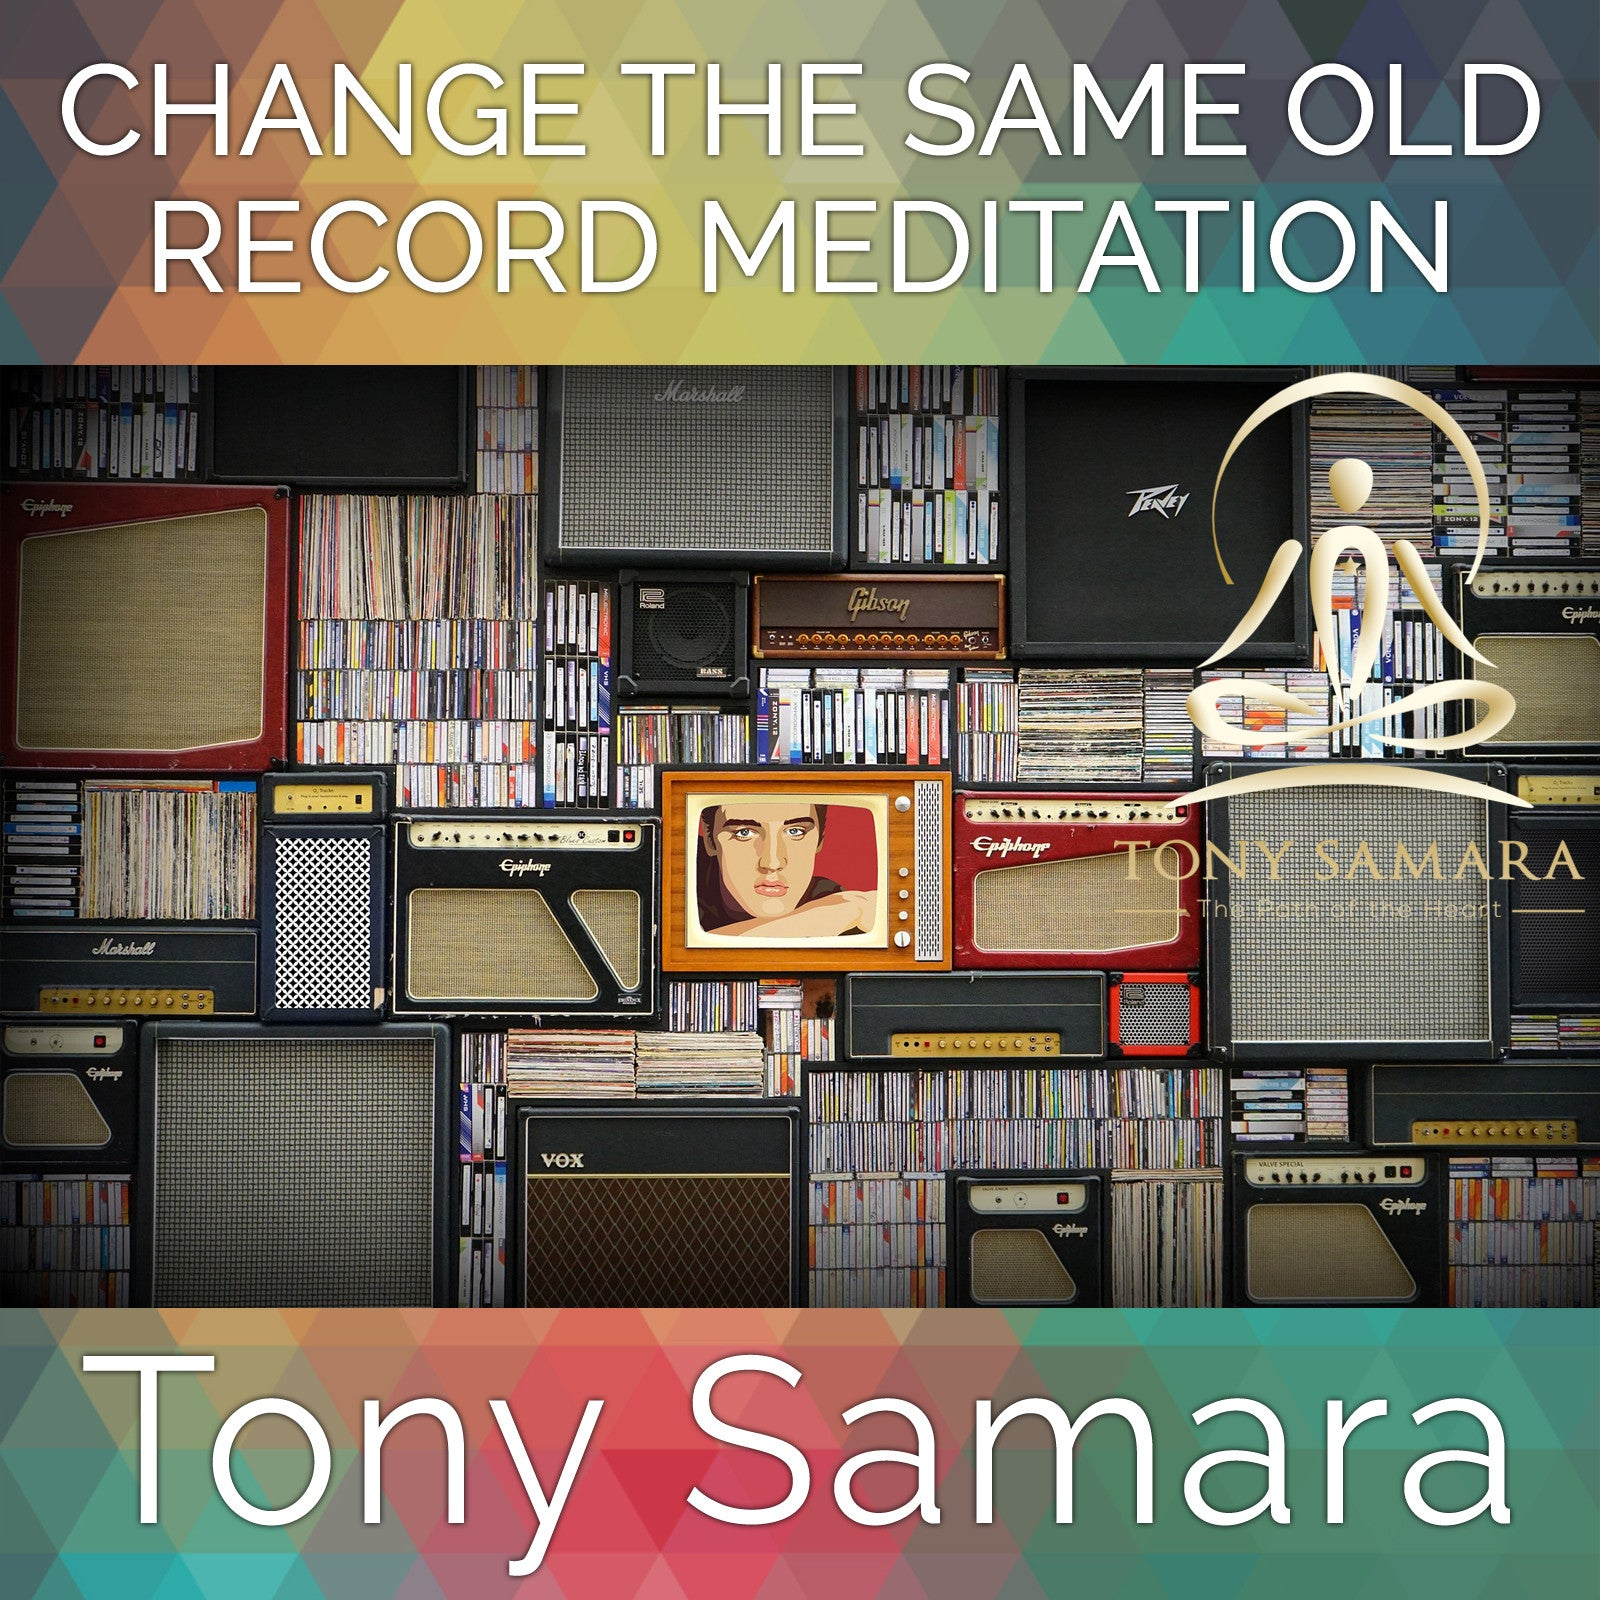 Change the Same Old Record Meditation (MP3 Audio Download) - Tony Samara Meditation